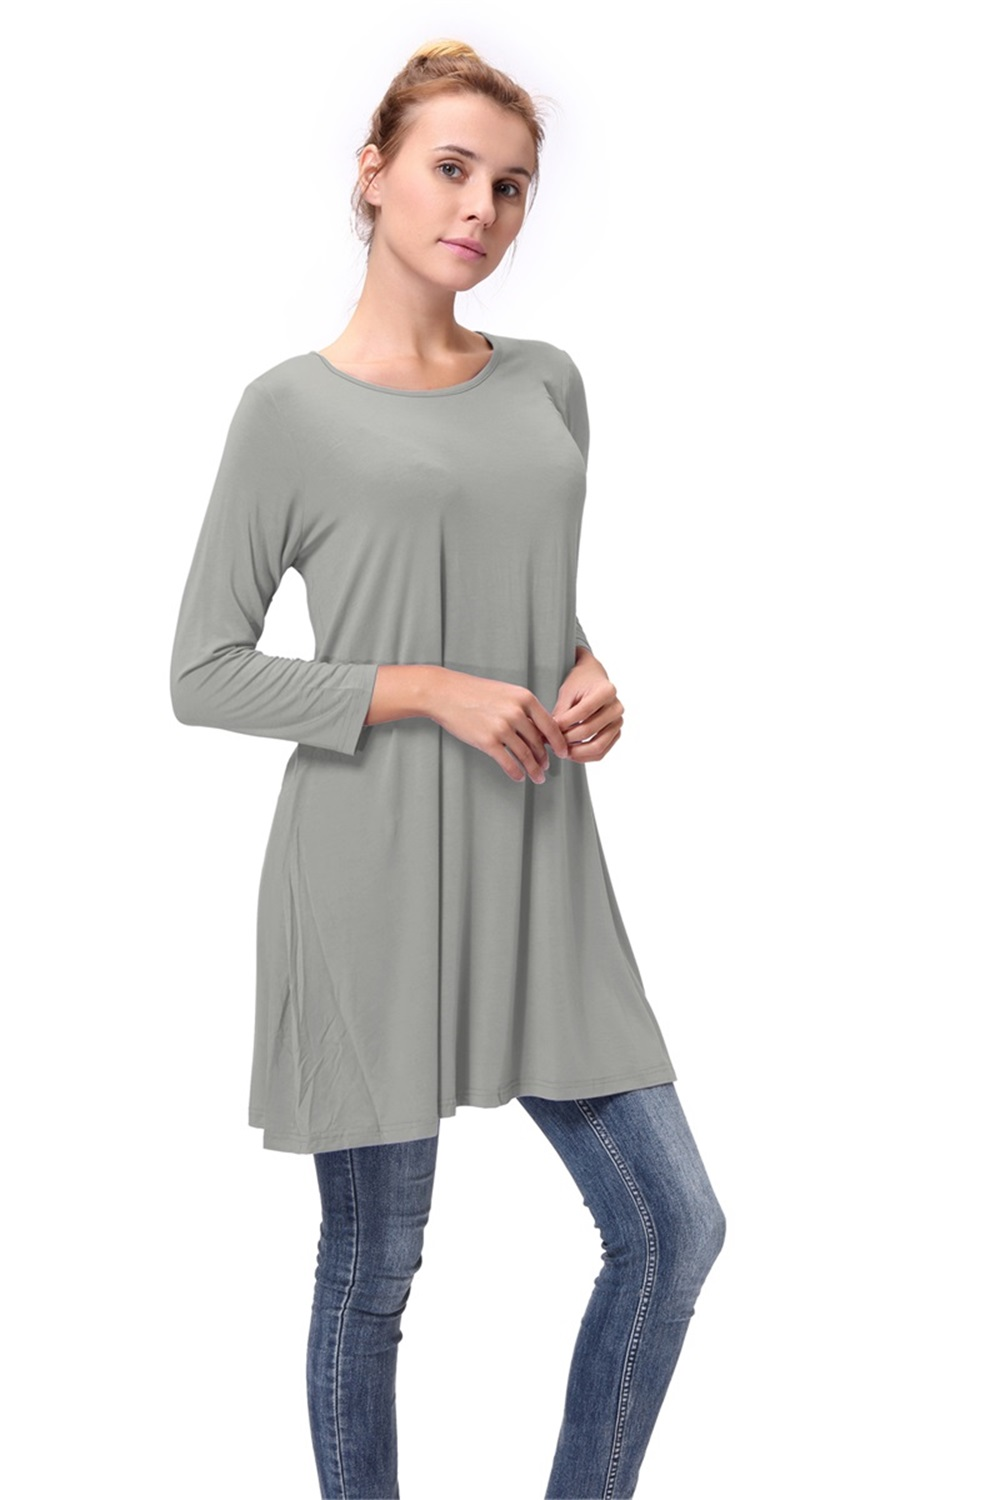 Women-Casual-Round-Neck-3-4-Long-Sleeve-Trapeze-Tunic-Top-Lady-Loose-Fit-Dress thumbnail 35